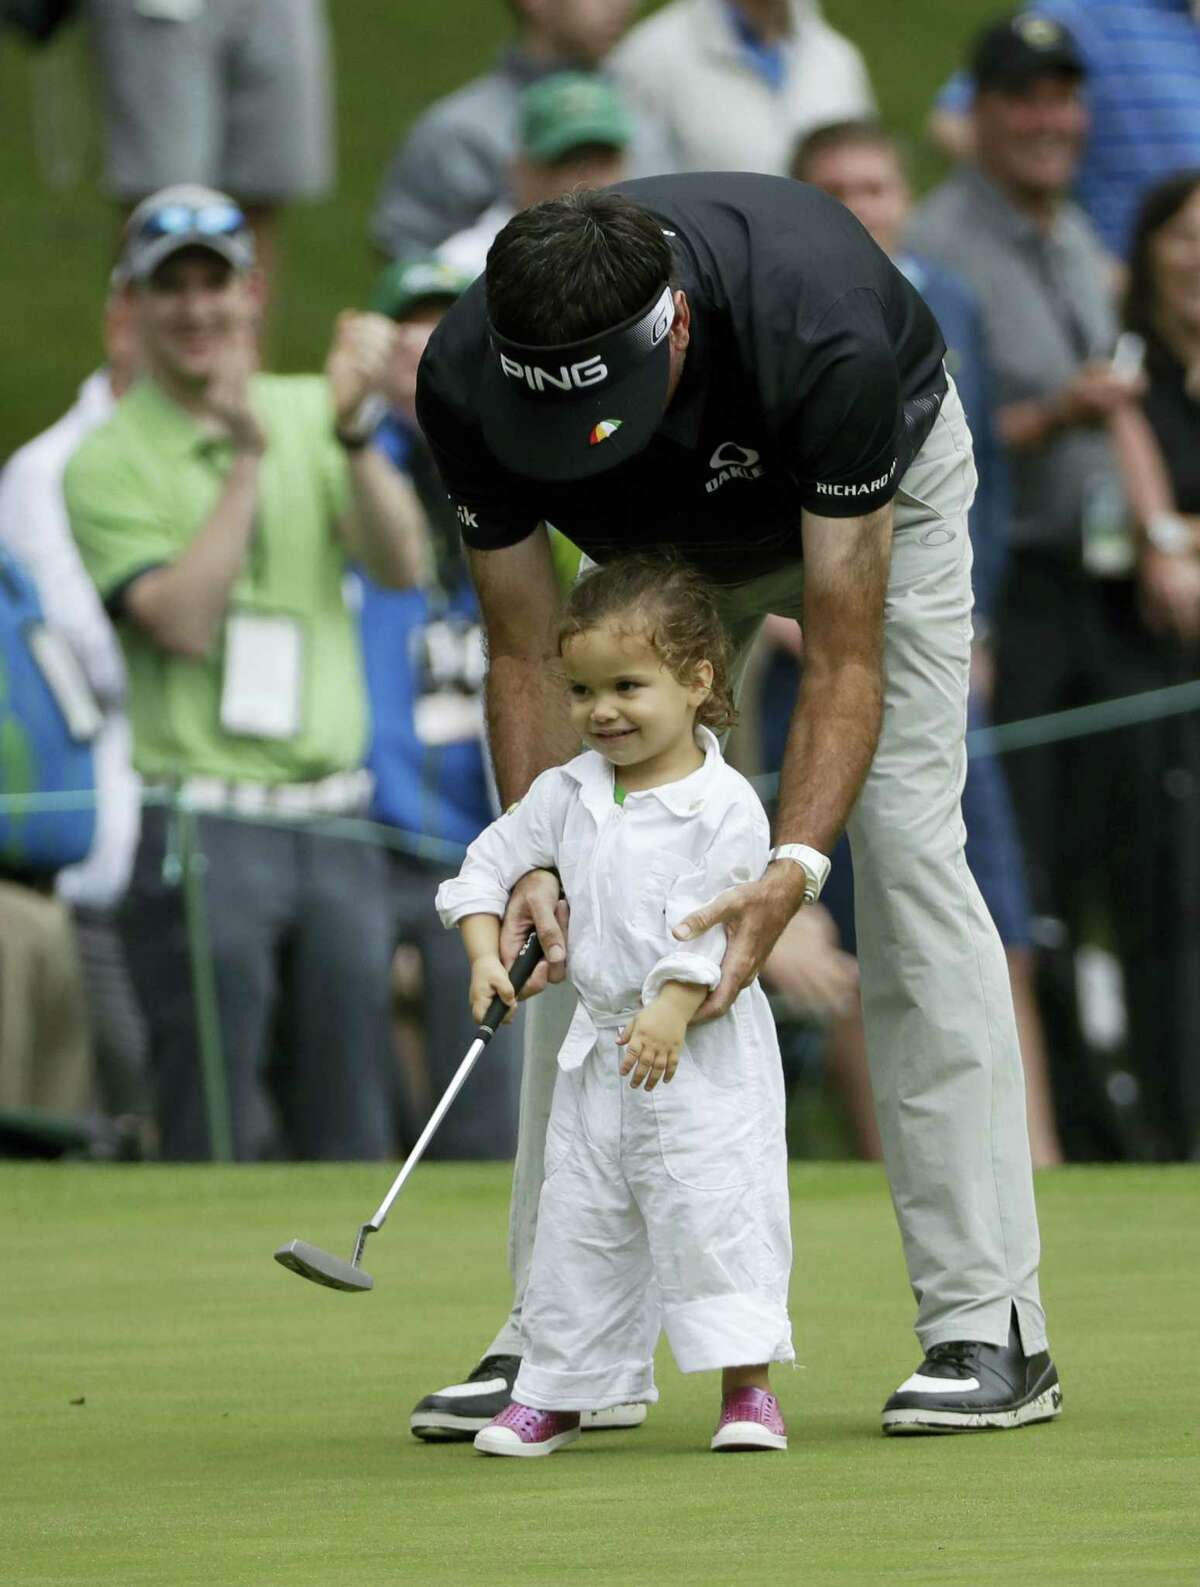 Bubba Watson helps his daughter Dakota putt during the par three competition at the Masters golf tournament Wednesday in Augusta, Ga.